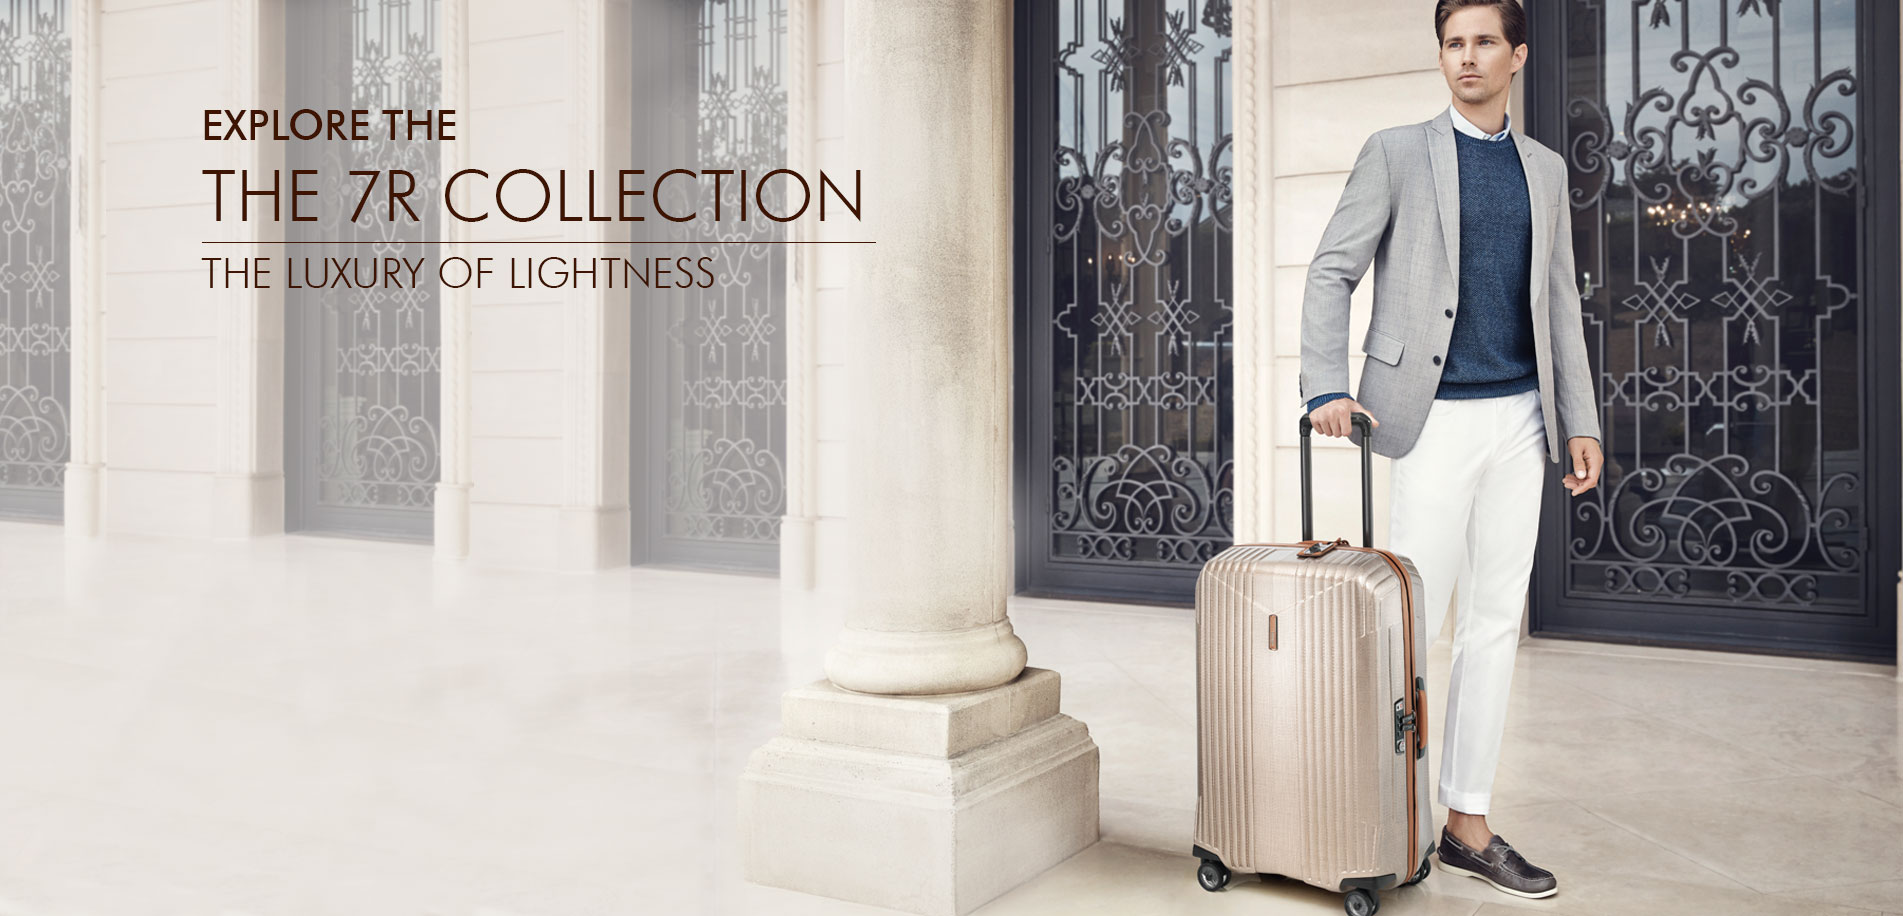 Explore The 7r Collection And Discover Luxury Of Lightness Now